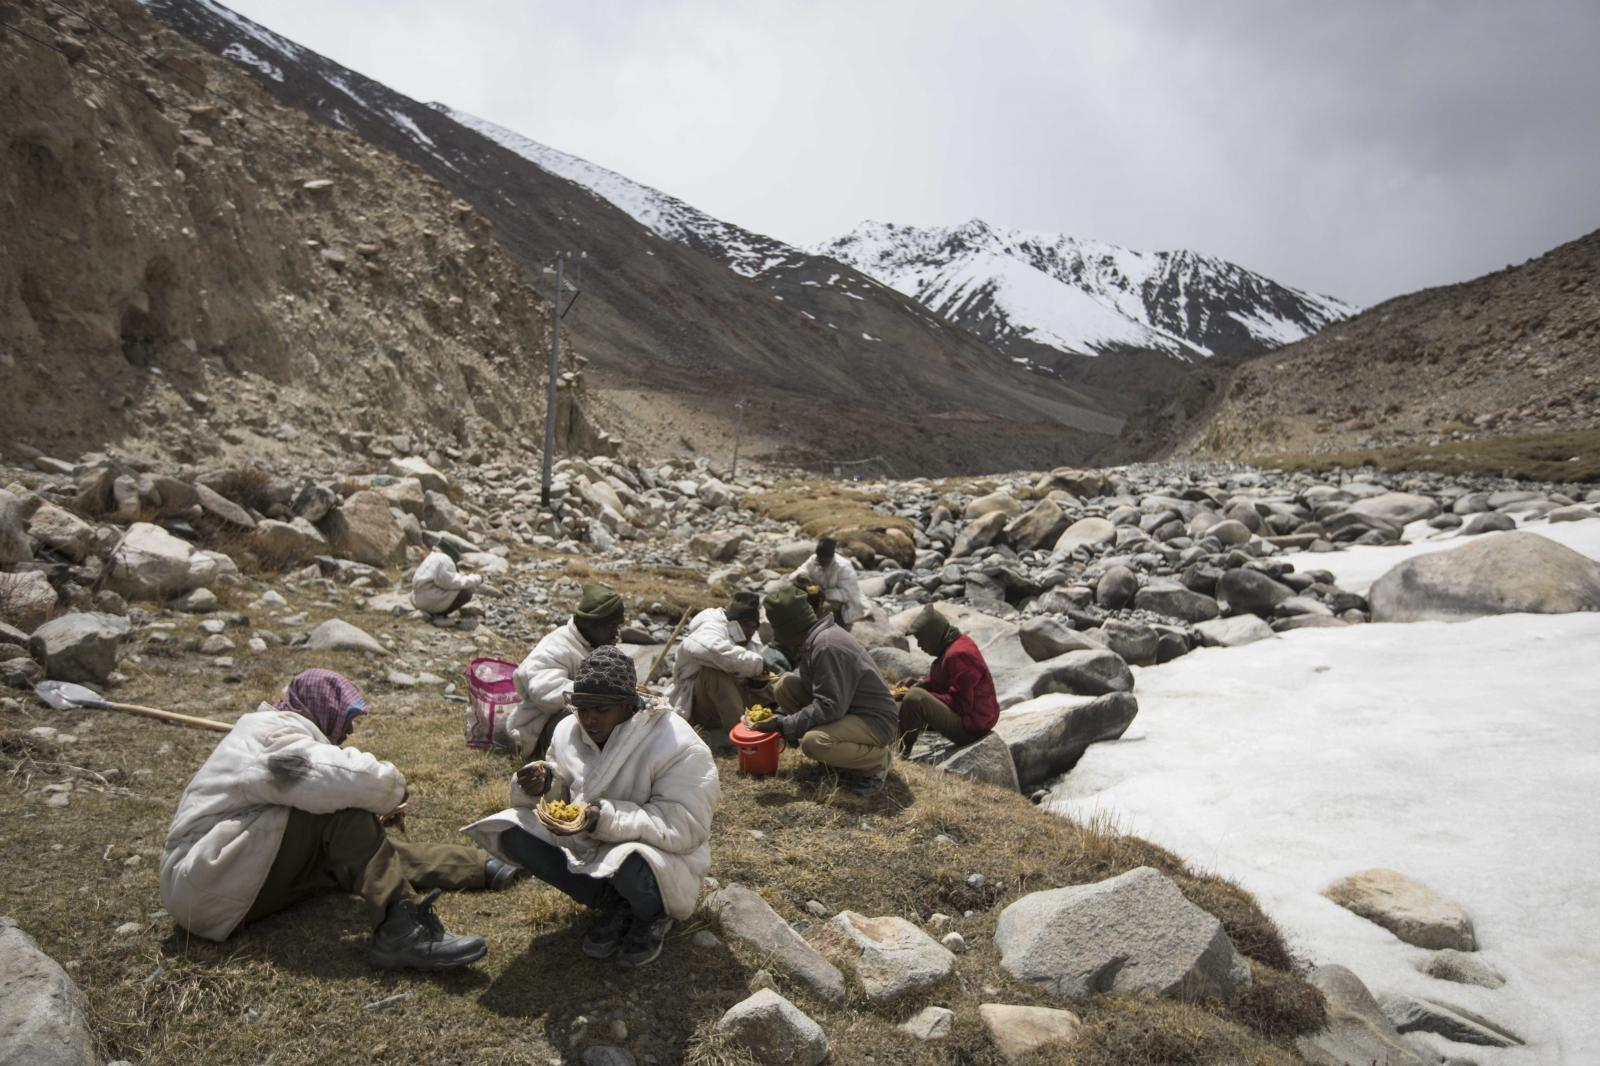 Road maintenance workers from India's low-lying eastern Jharkhand state eat lunch while labouring along Pangong Lake road near the Chang La pass in northern India's Ladakh region.